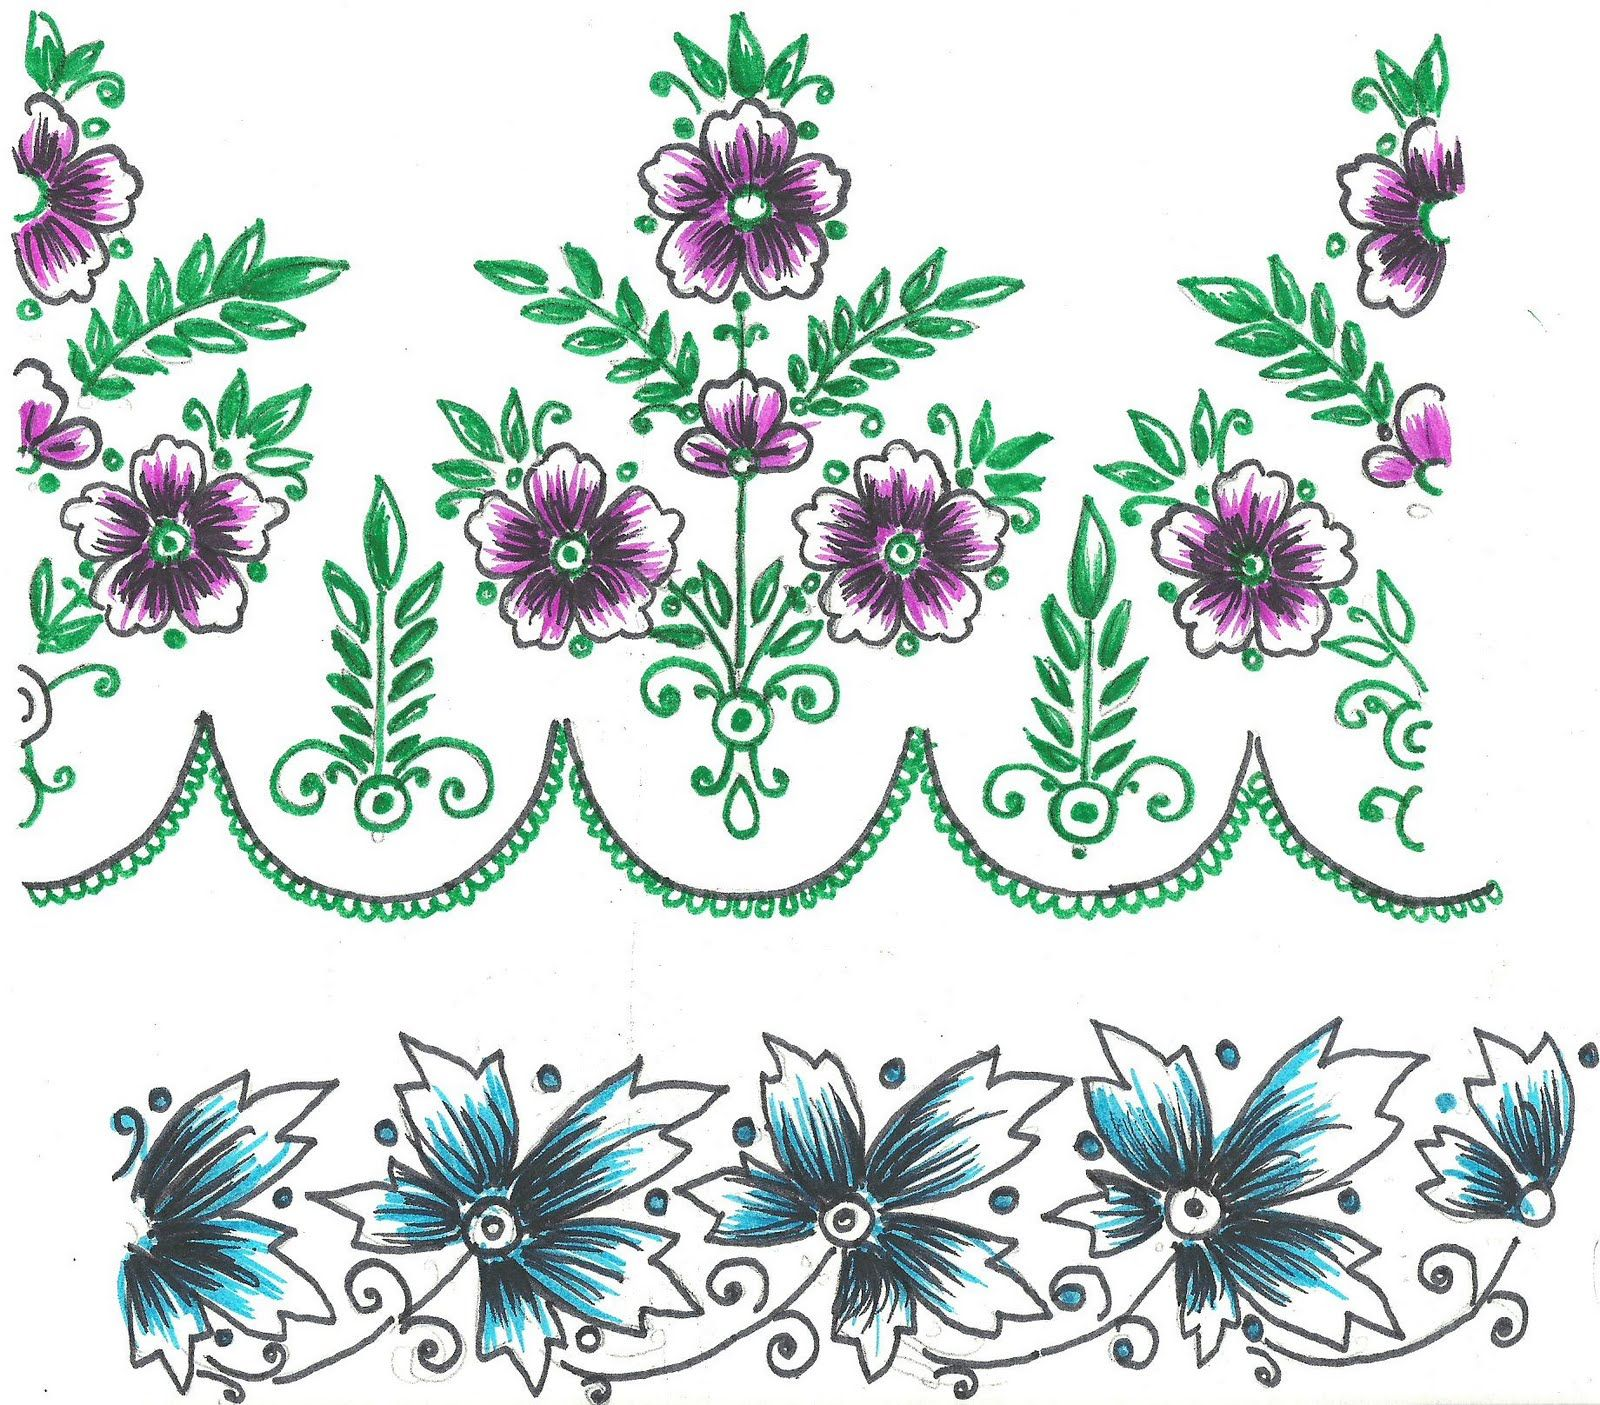 Free Hand Embroidery Flowers Patterns | saree and table-cloth border design.